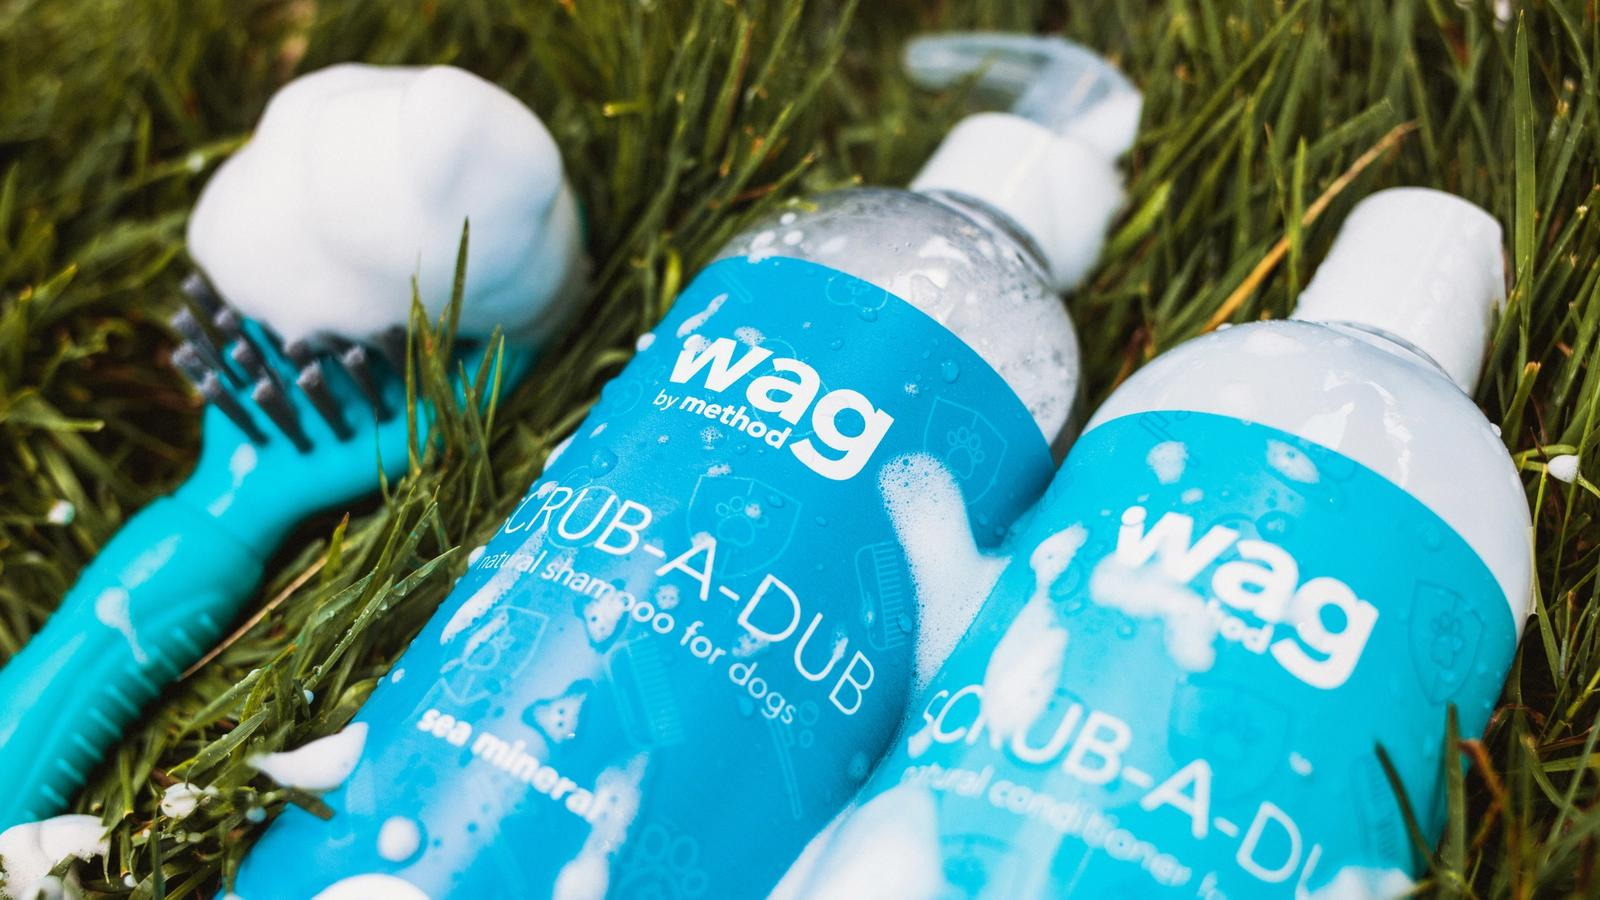 Wag by Method // brand extension